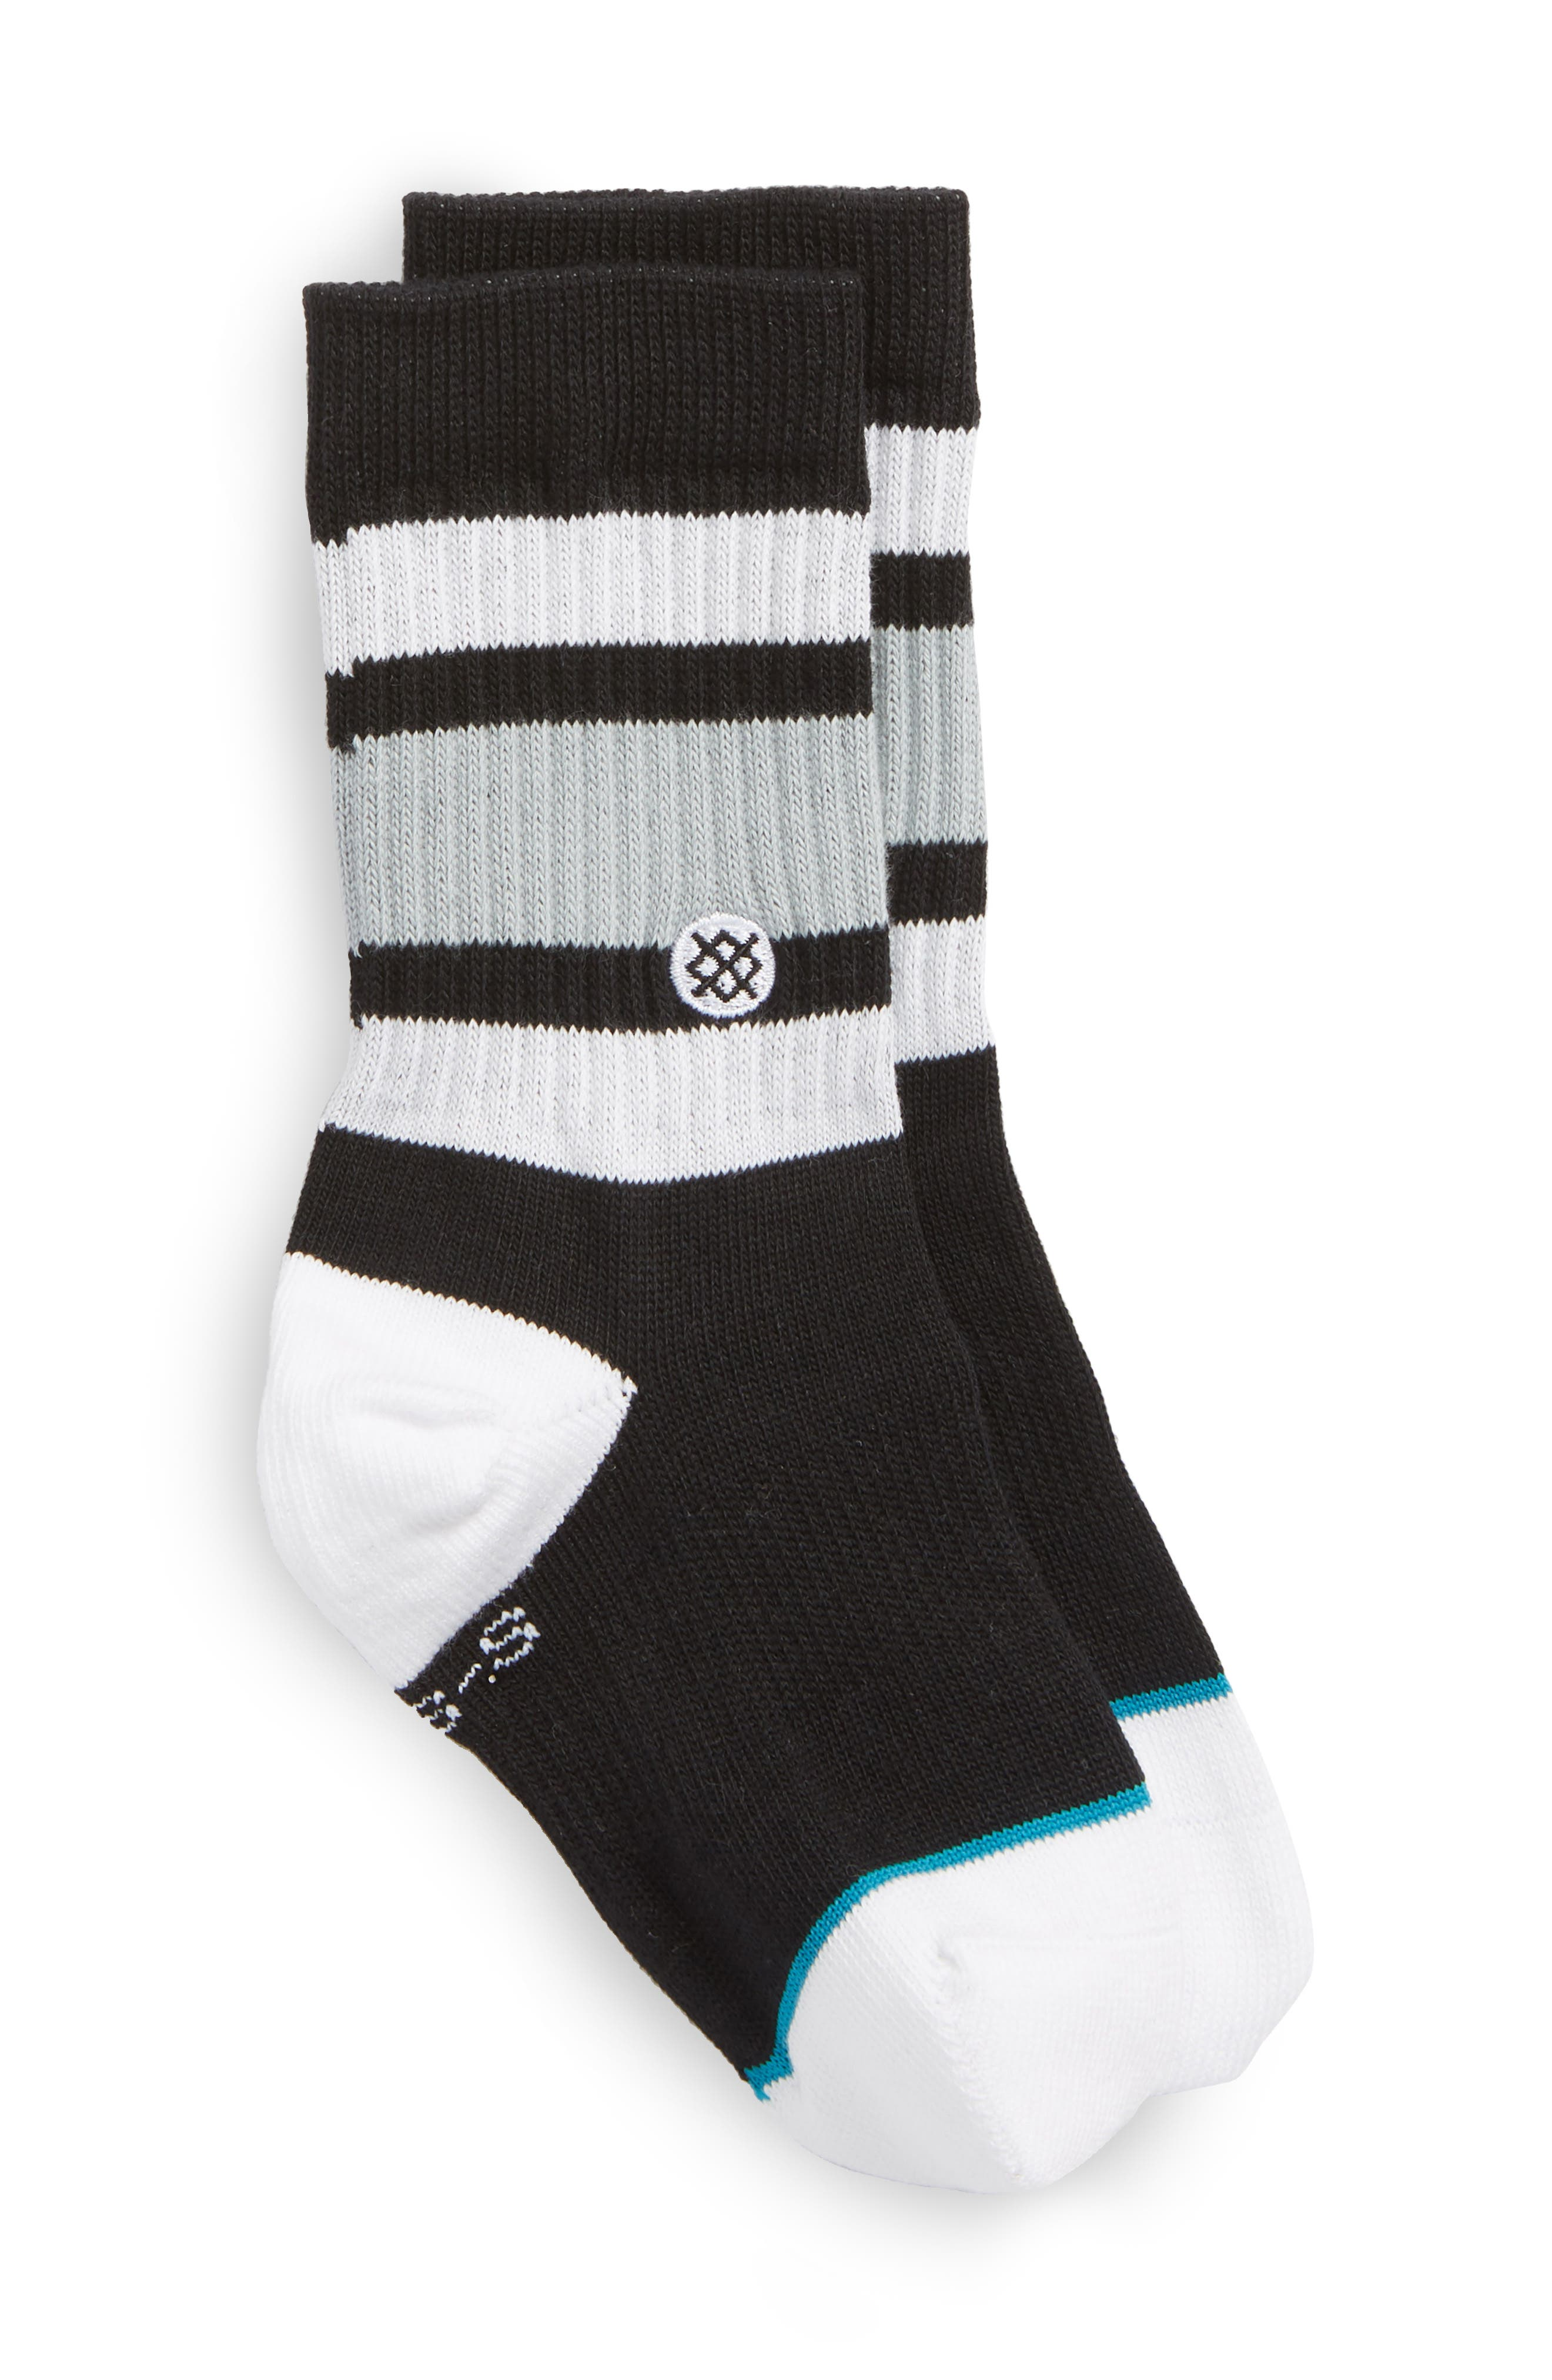 Boyd Striped Socks,                         Main,                         color, Black